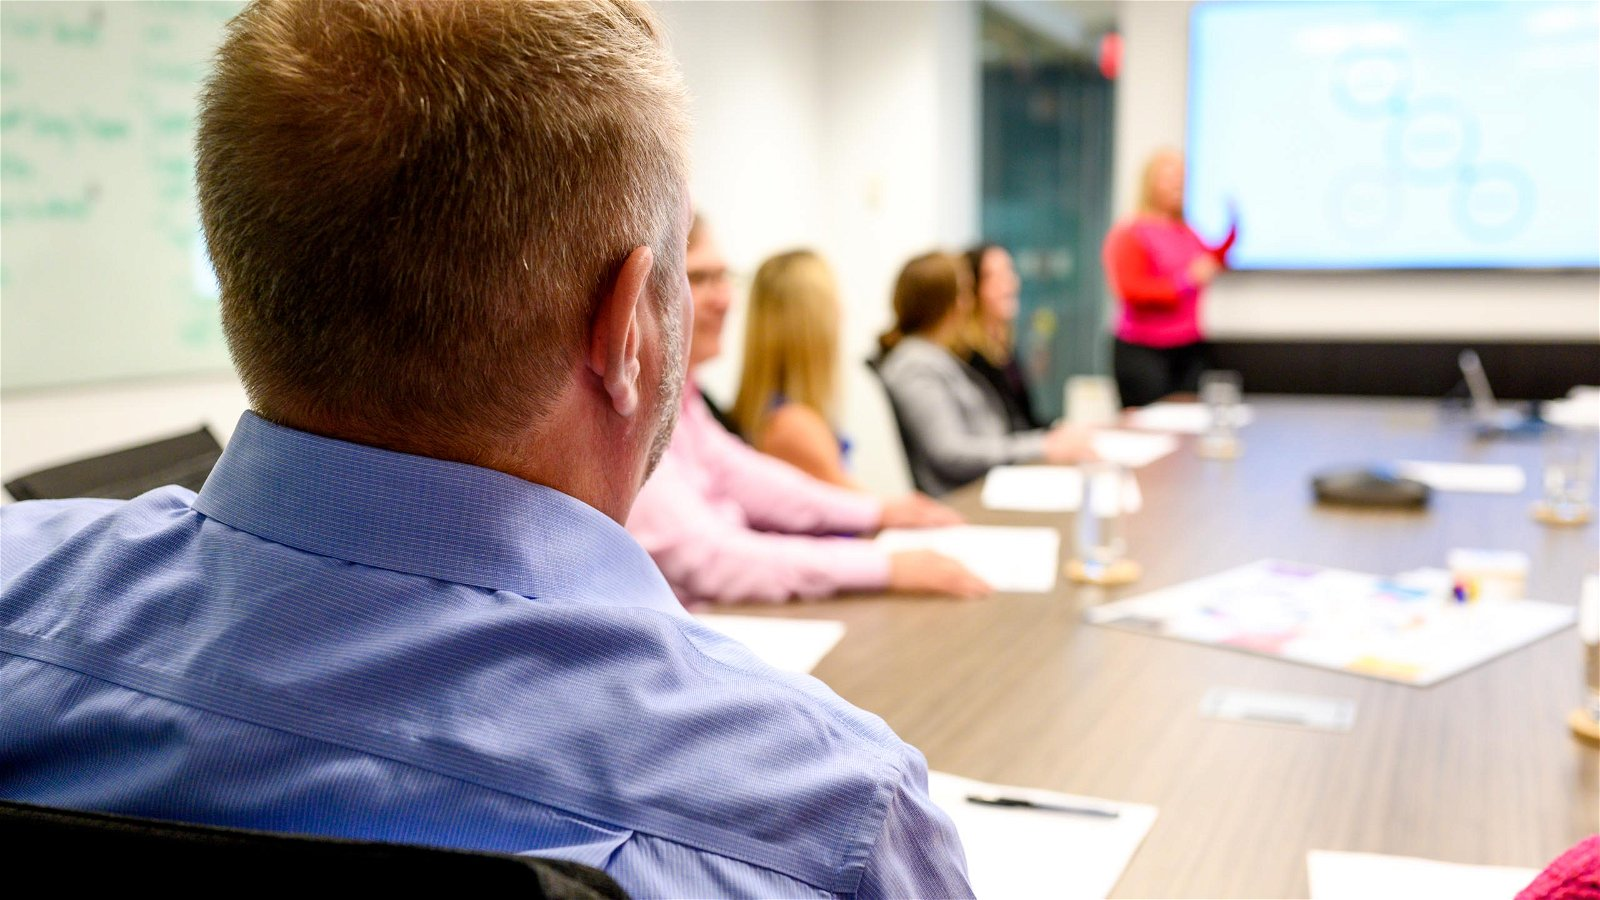 Man's back in forefront at meeting table presentation